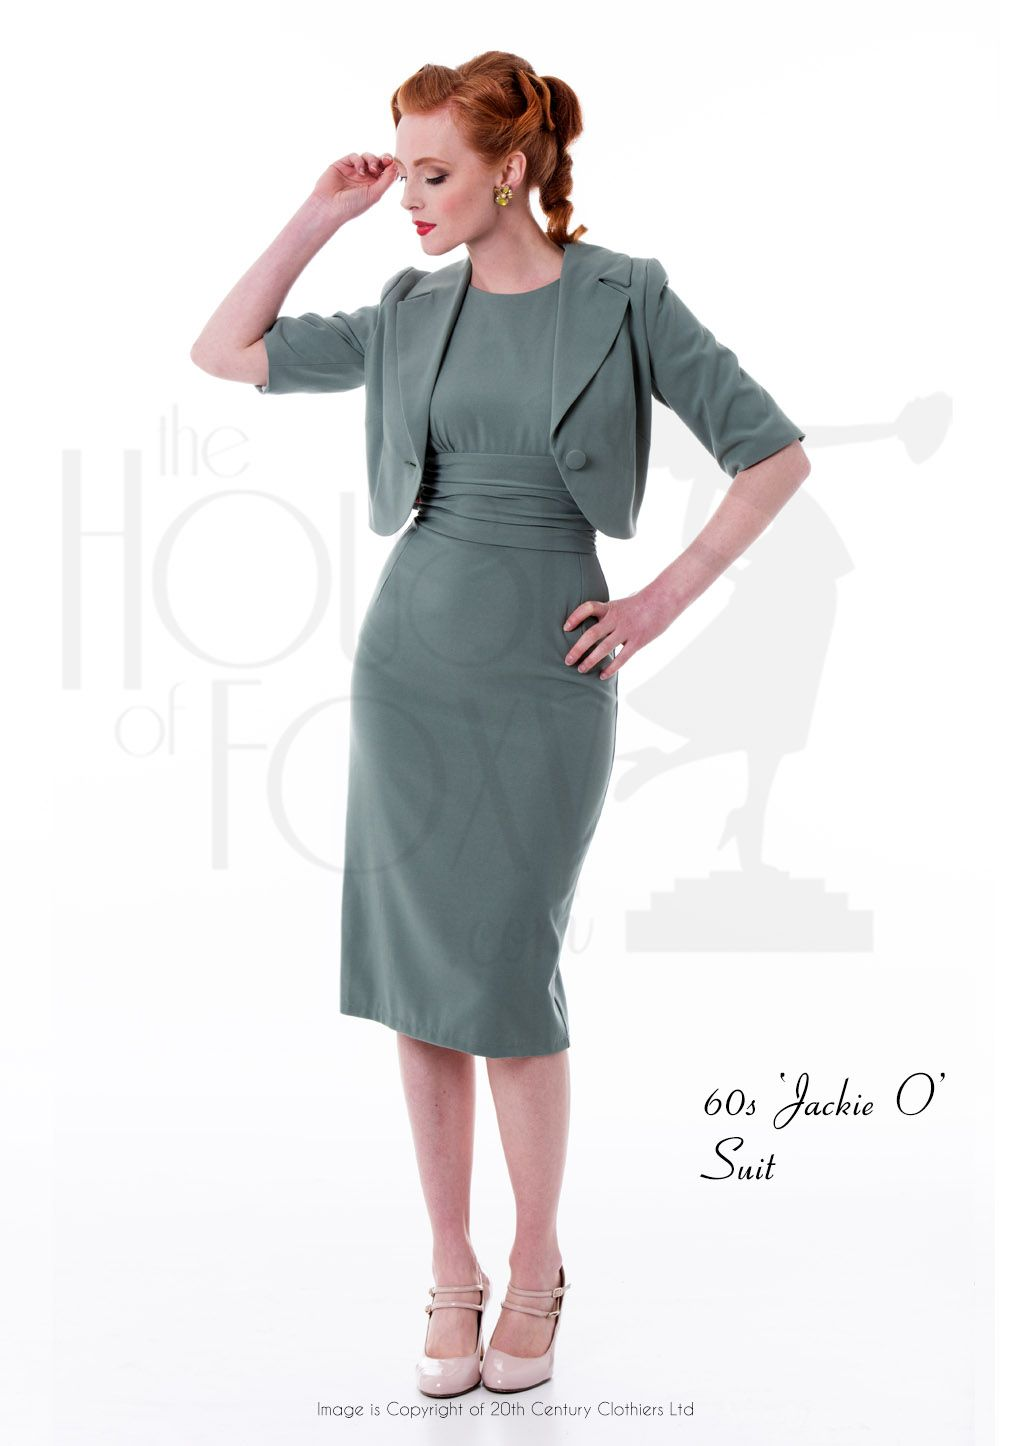 Early s inspired ujackie ou ensemble a shift dress style with